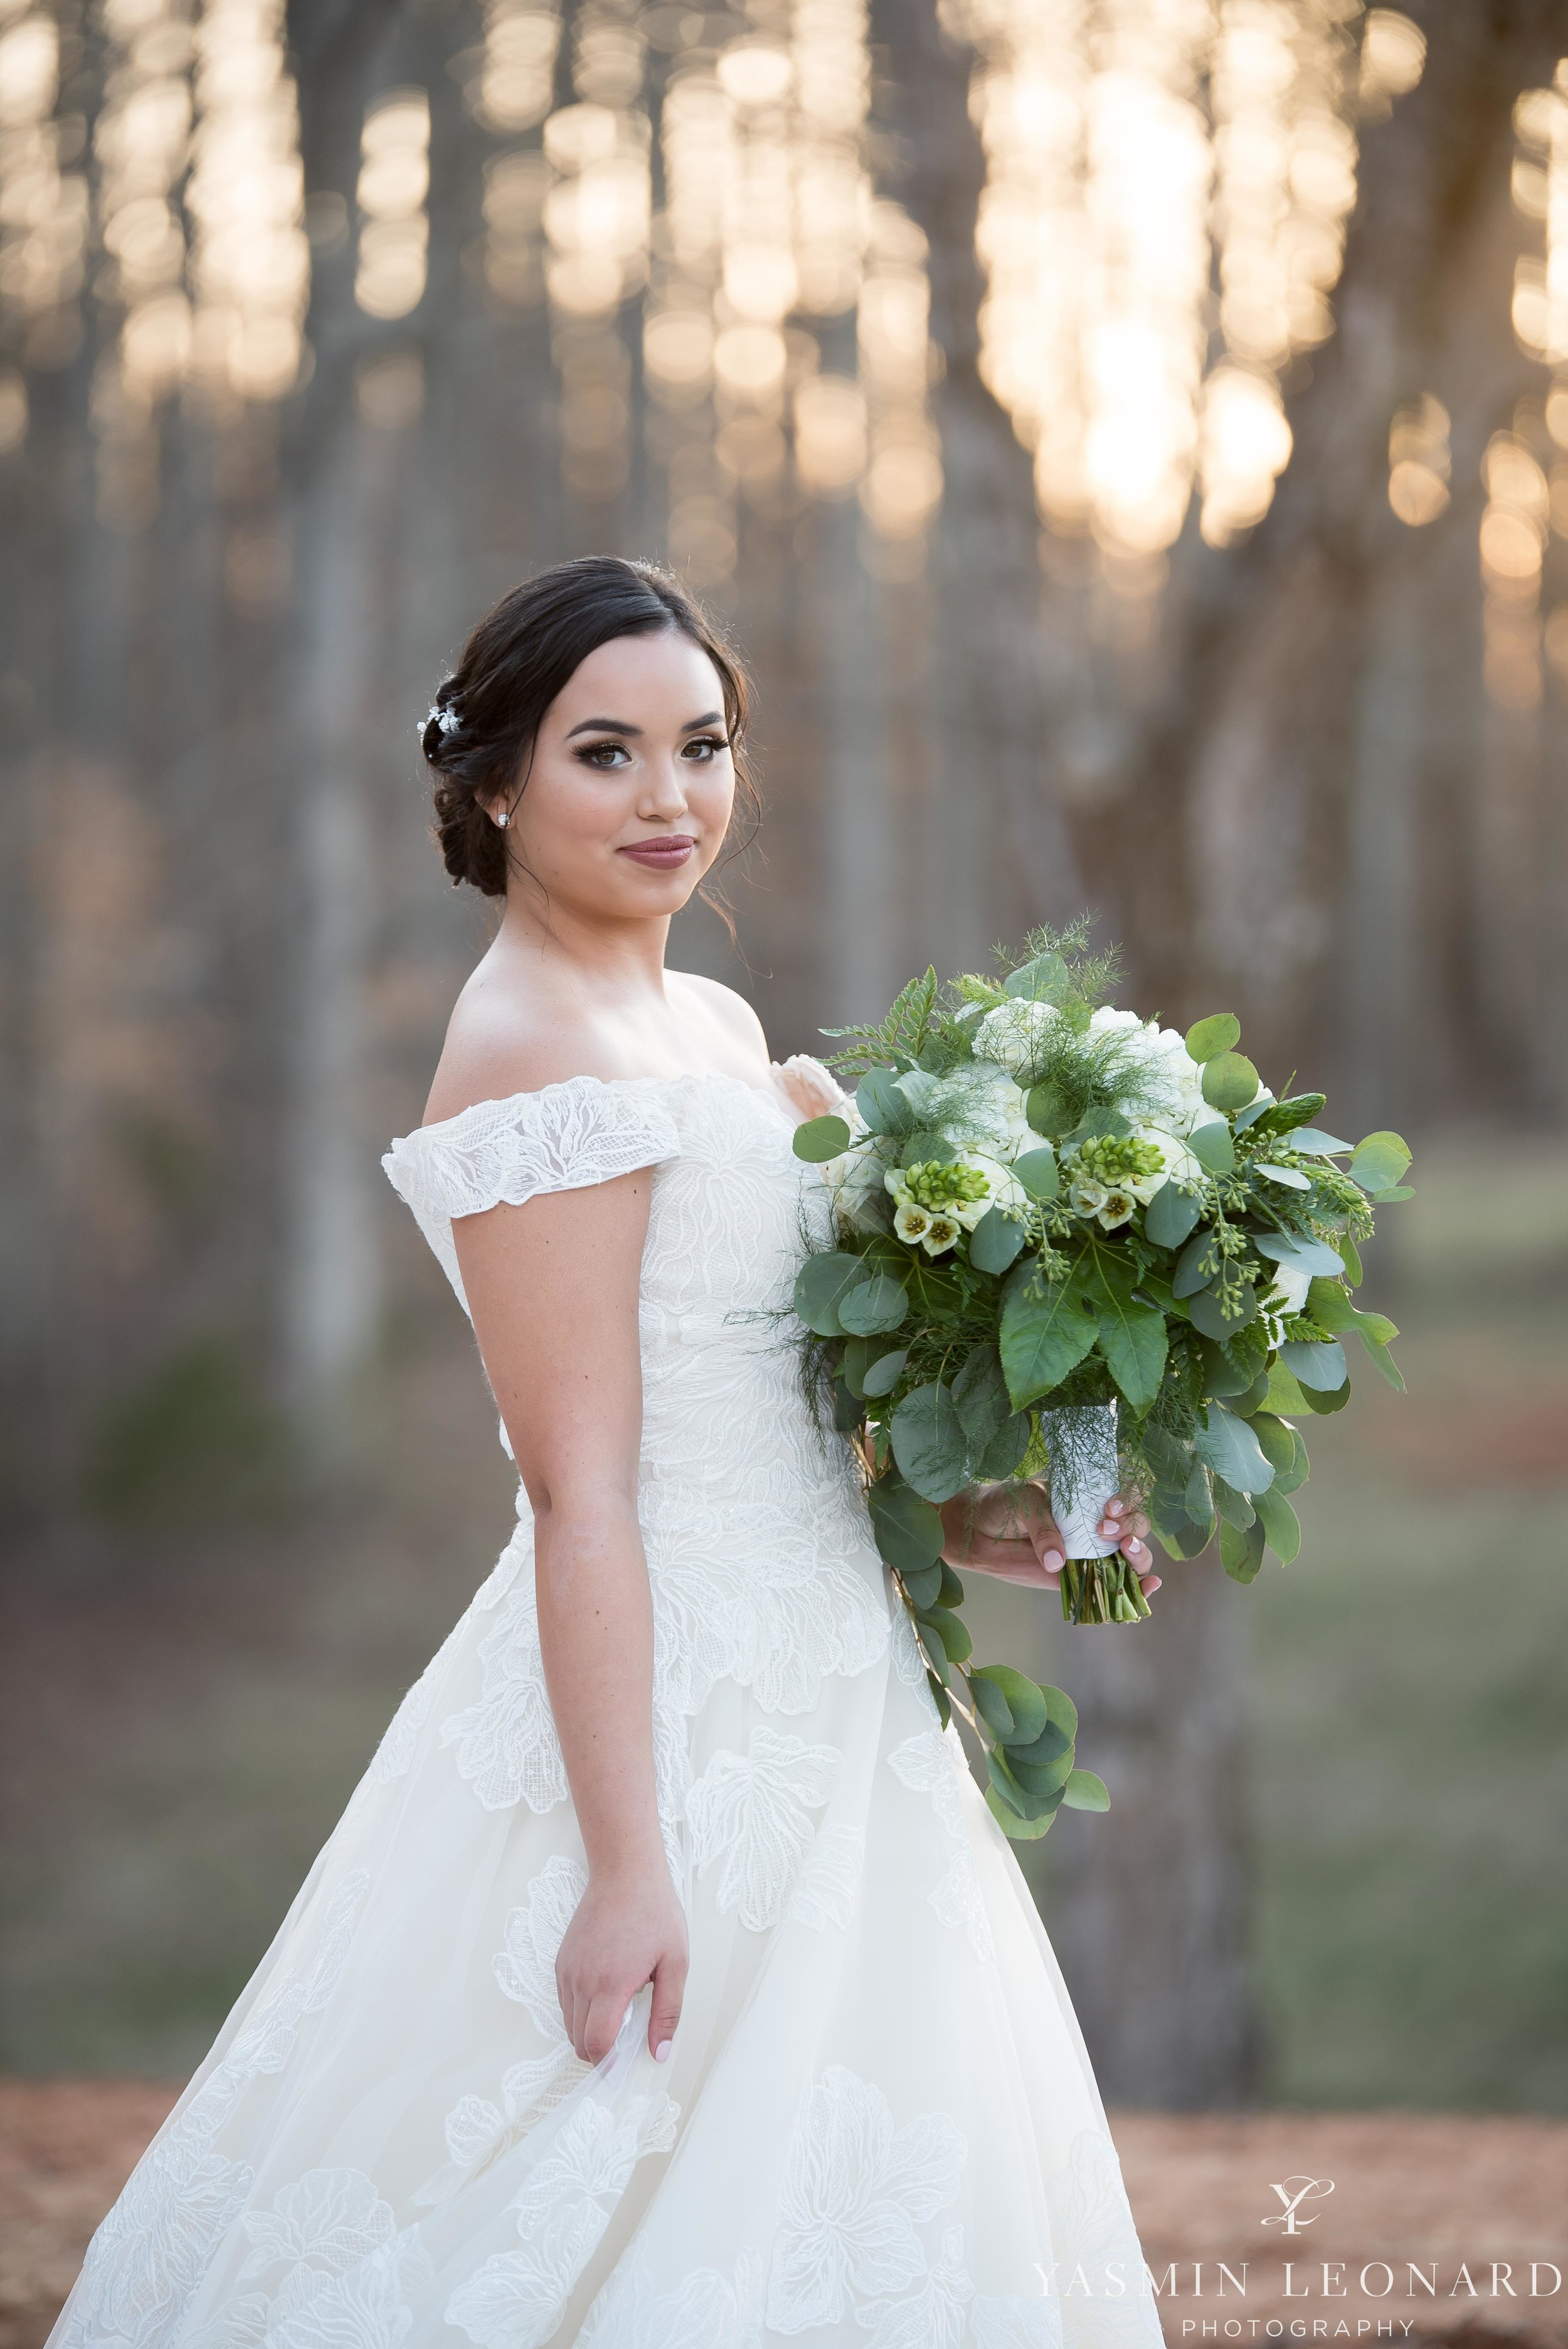 Old Homeplace Vineyard - Grits and Glitter - Dashing Dames Bridal Boutique - Just Priceless - Yasmin Leonard Photography - High Point Weddings - NC Weddings - NC Wedding Venues - High Point Jewelers - NC Wines - NC Vineyards - Cupcake Cuties-107.jpg